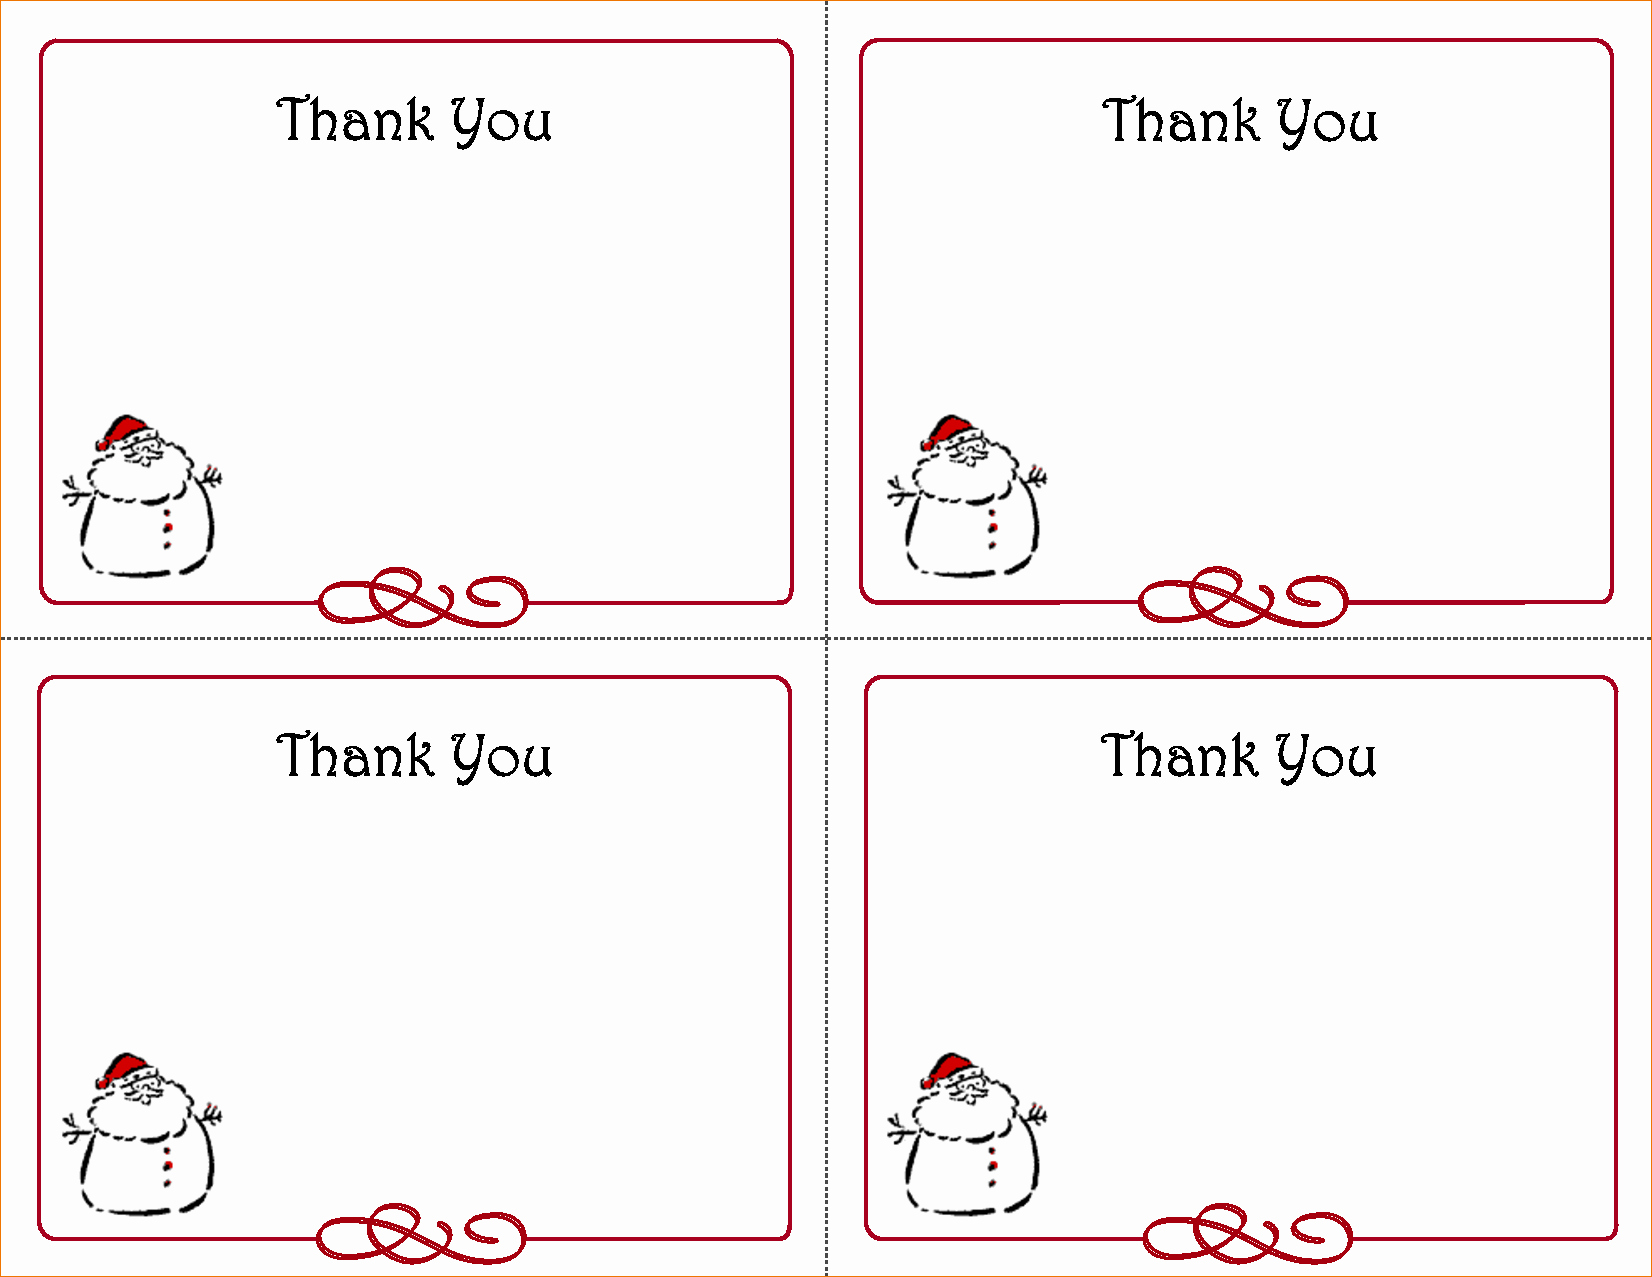 Thank You Cards Template Inspirational 5 Free Thank You Card Template